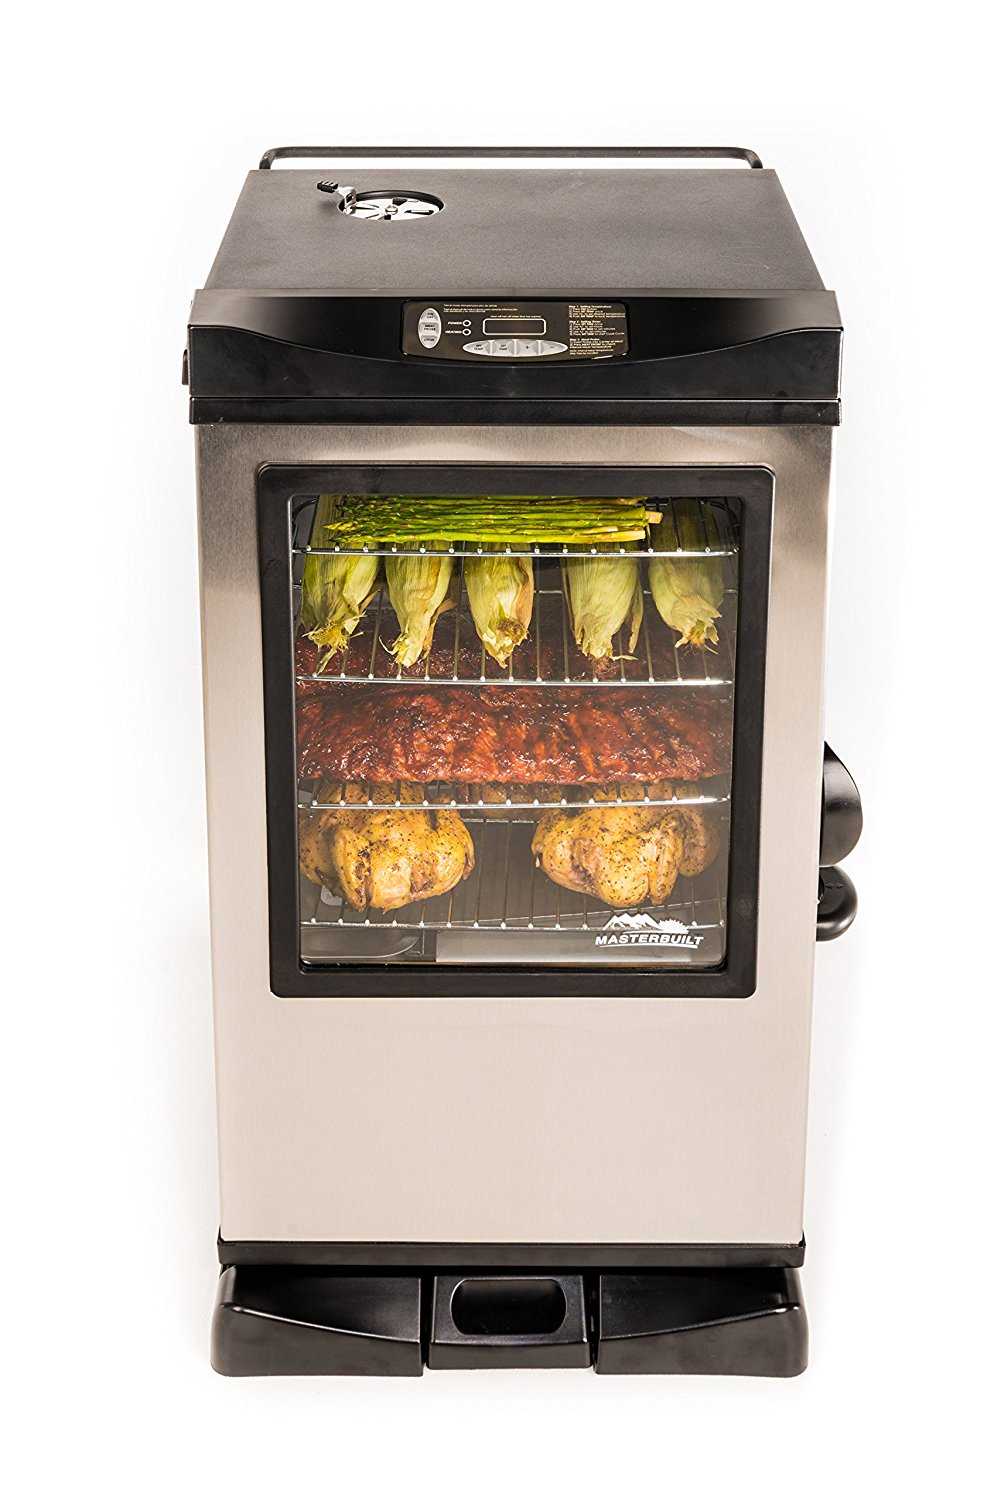 Masterbuilt 20077515 Front Controller Electric Smoker with Window and RF Controller, 30-Inch Review